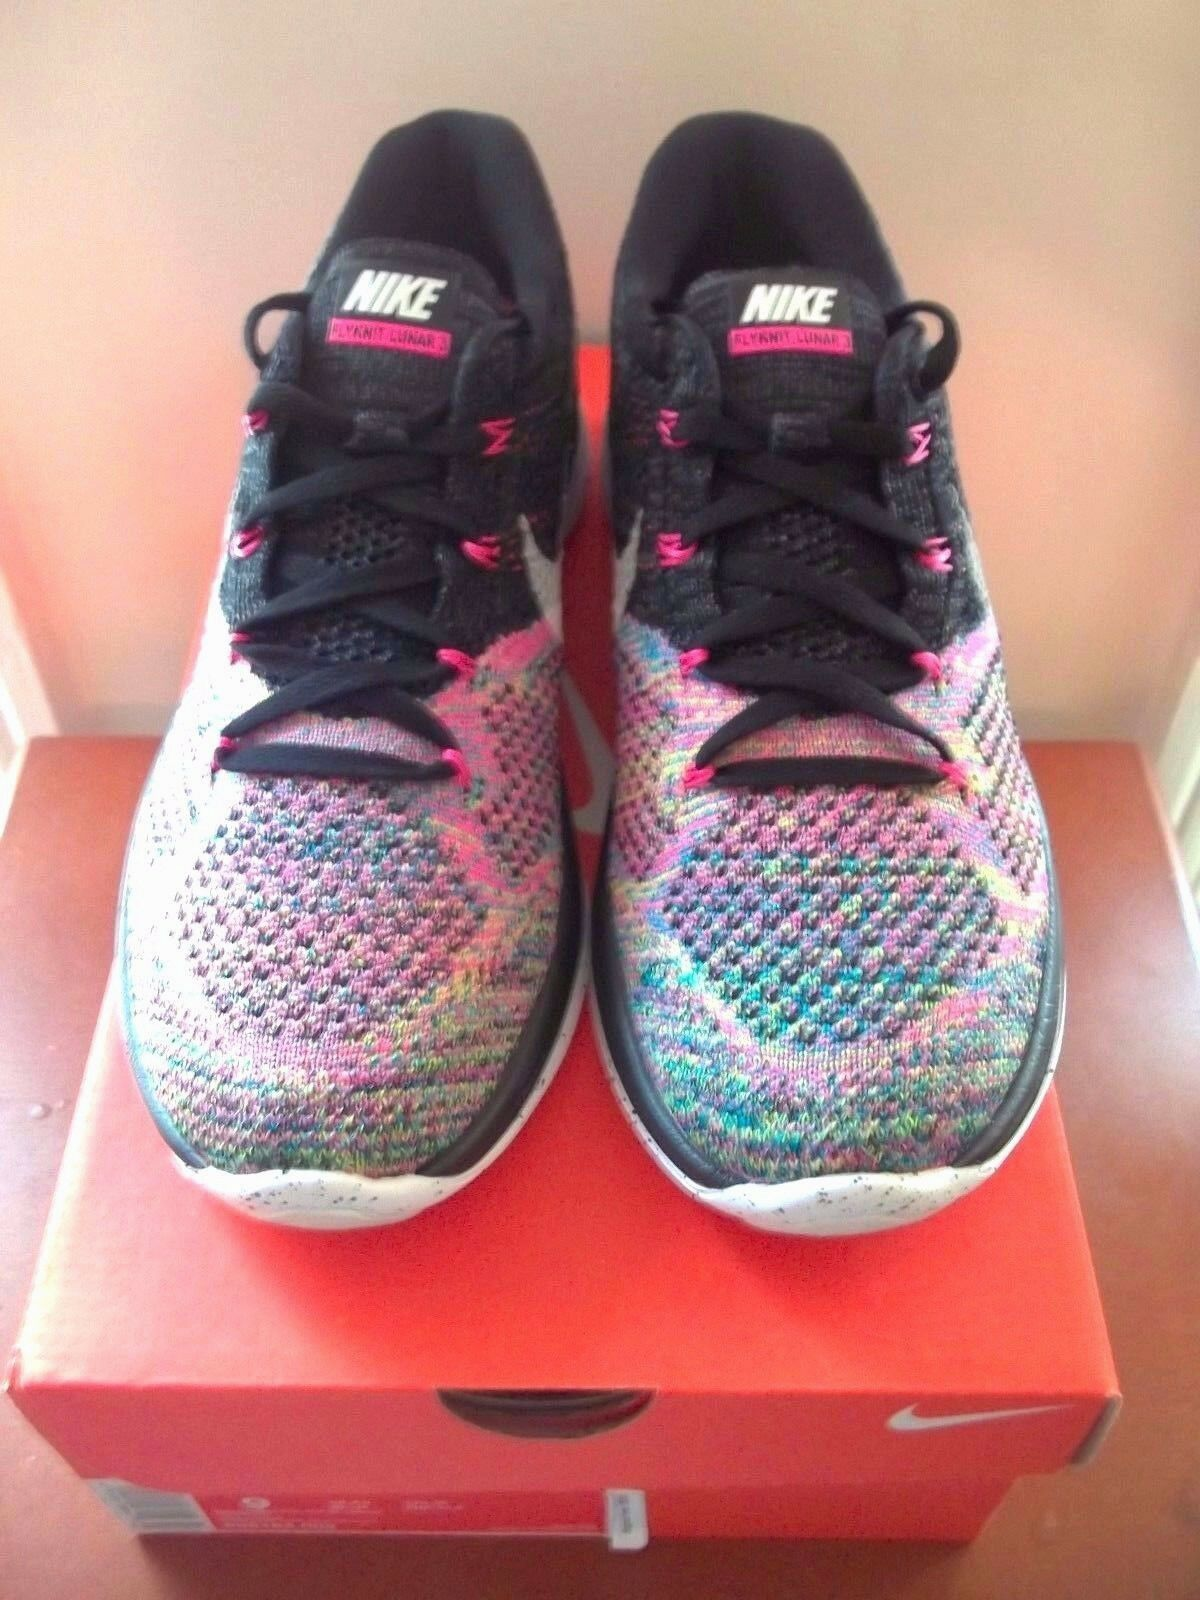 WMNS Nike Flyknit Lunar 3 Multicolor 9 Black Pink 698182-003 HTM Racer Trainer Great discount